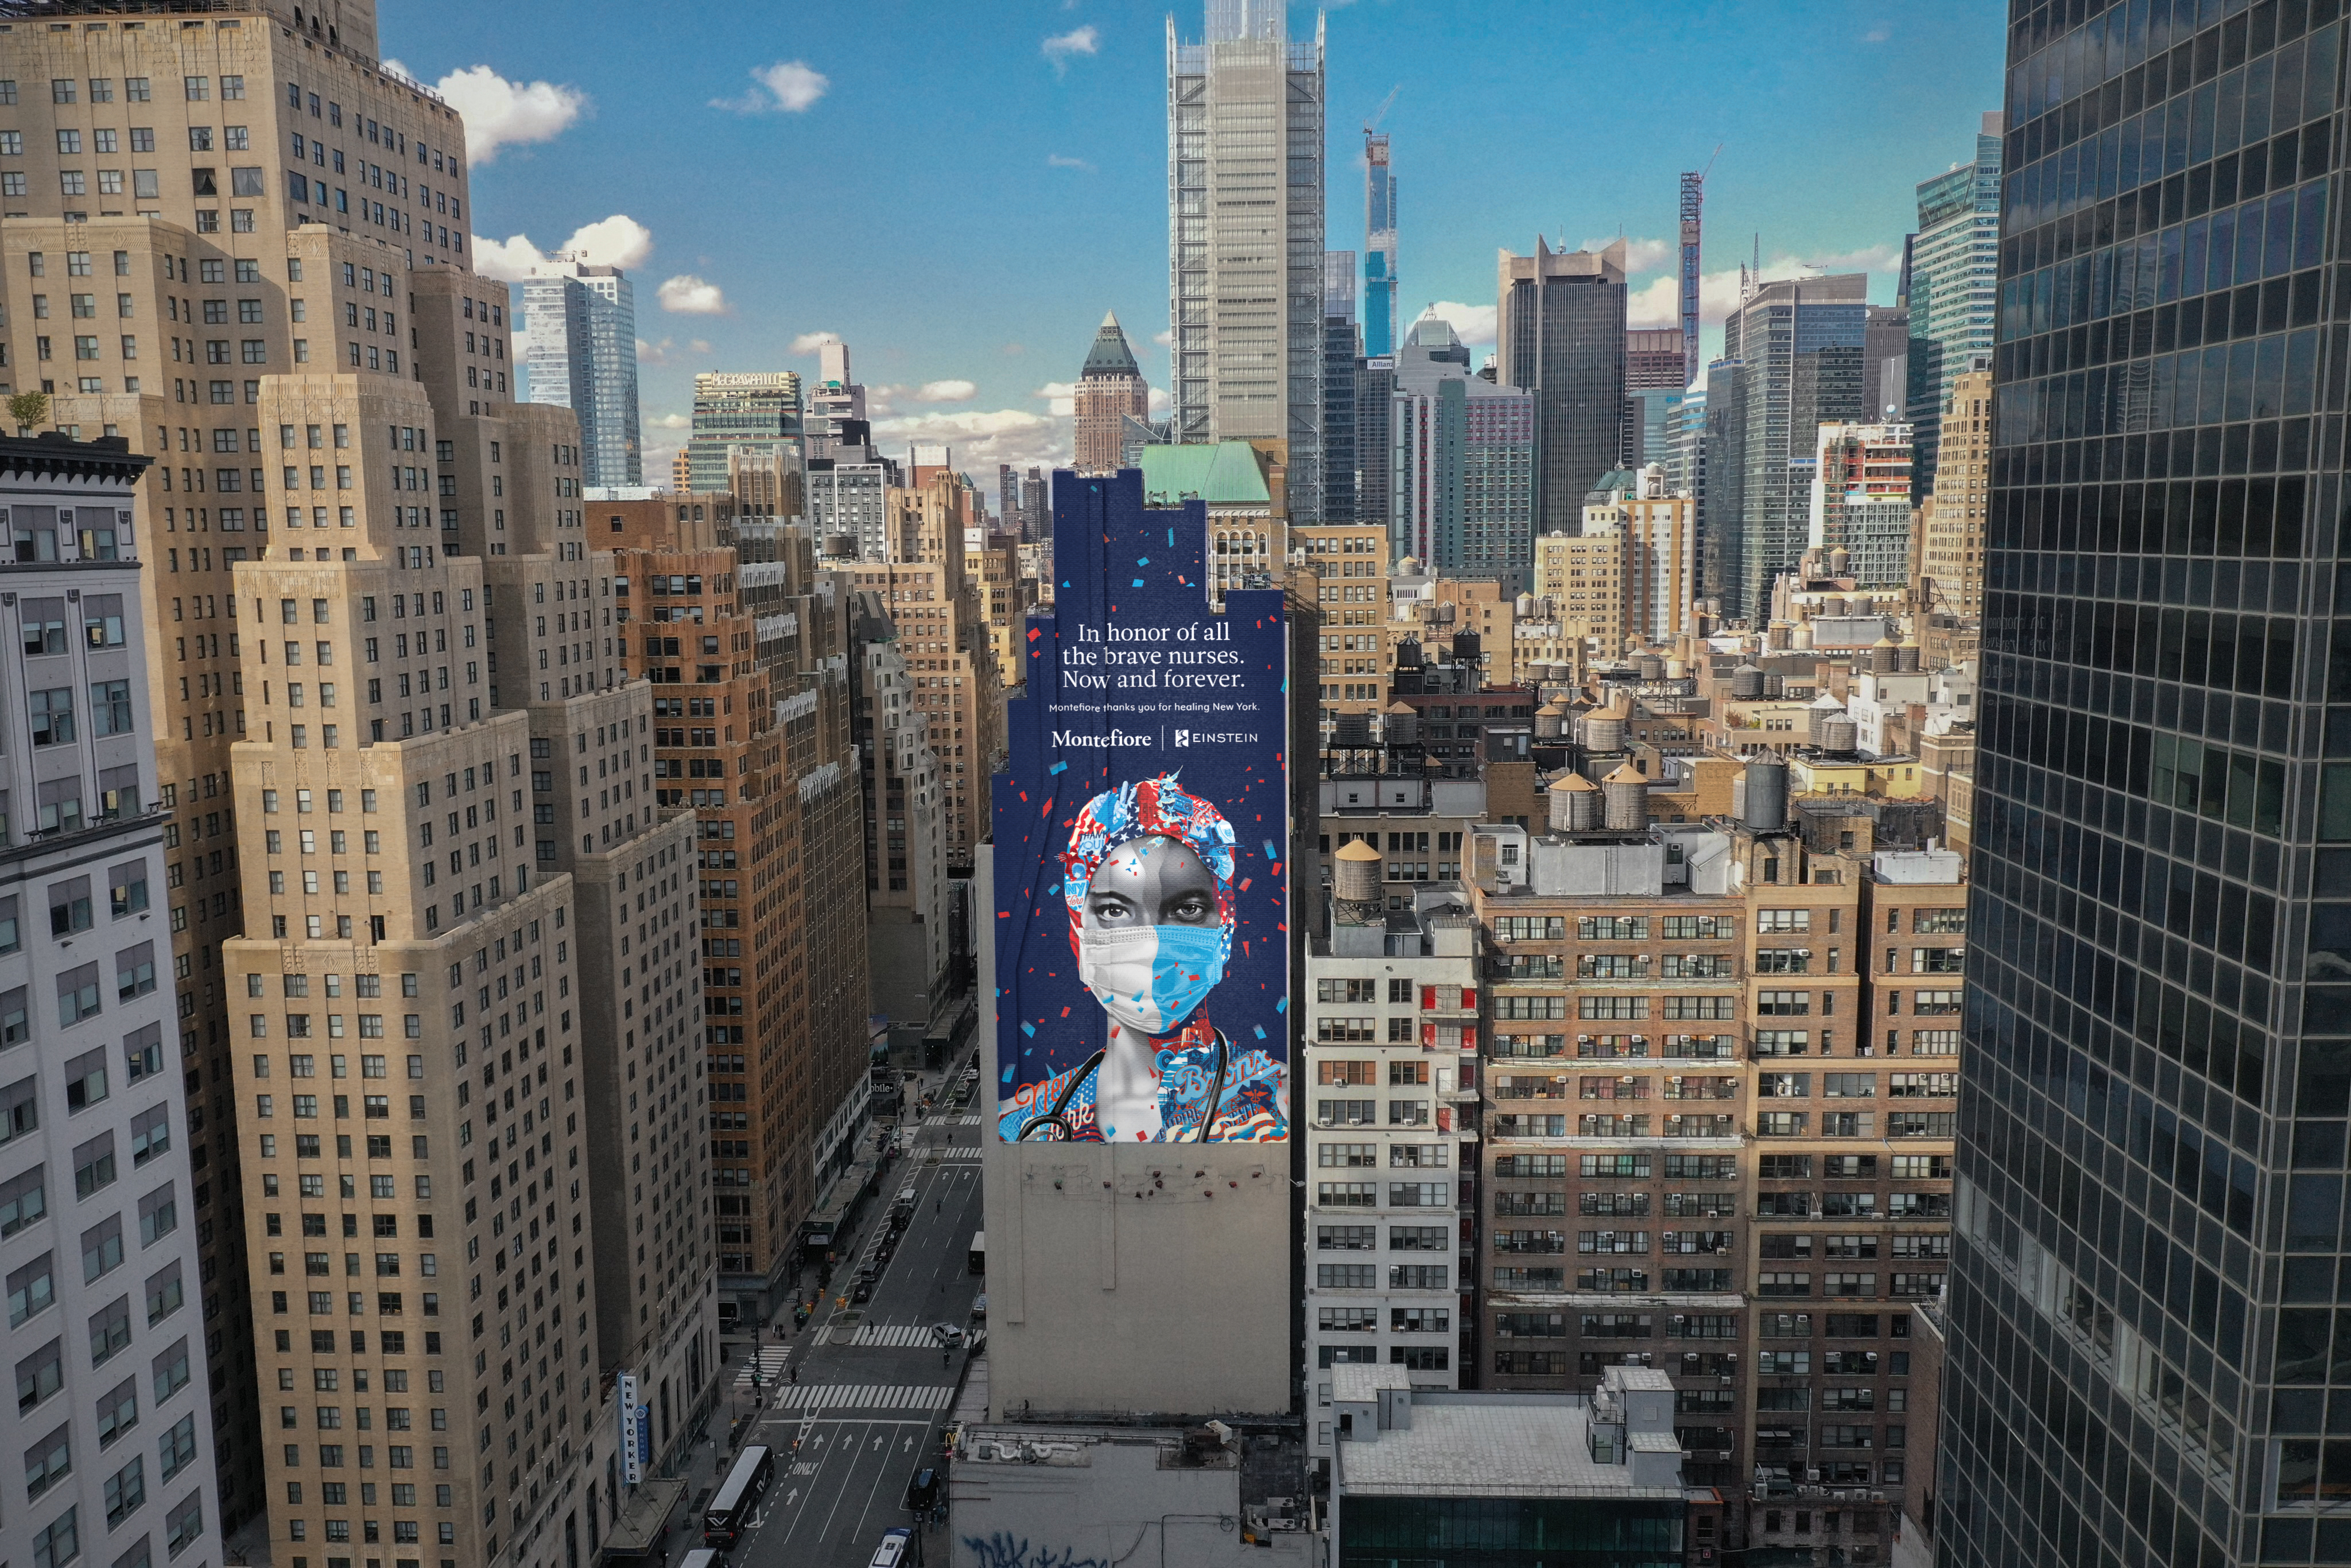 Tristan Eaton Creates Art for Iconic New Mural for Montefiore-Einstein, Honoring Nurses and Medical Staff